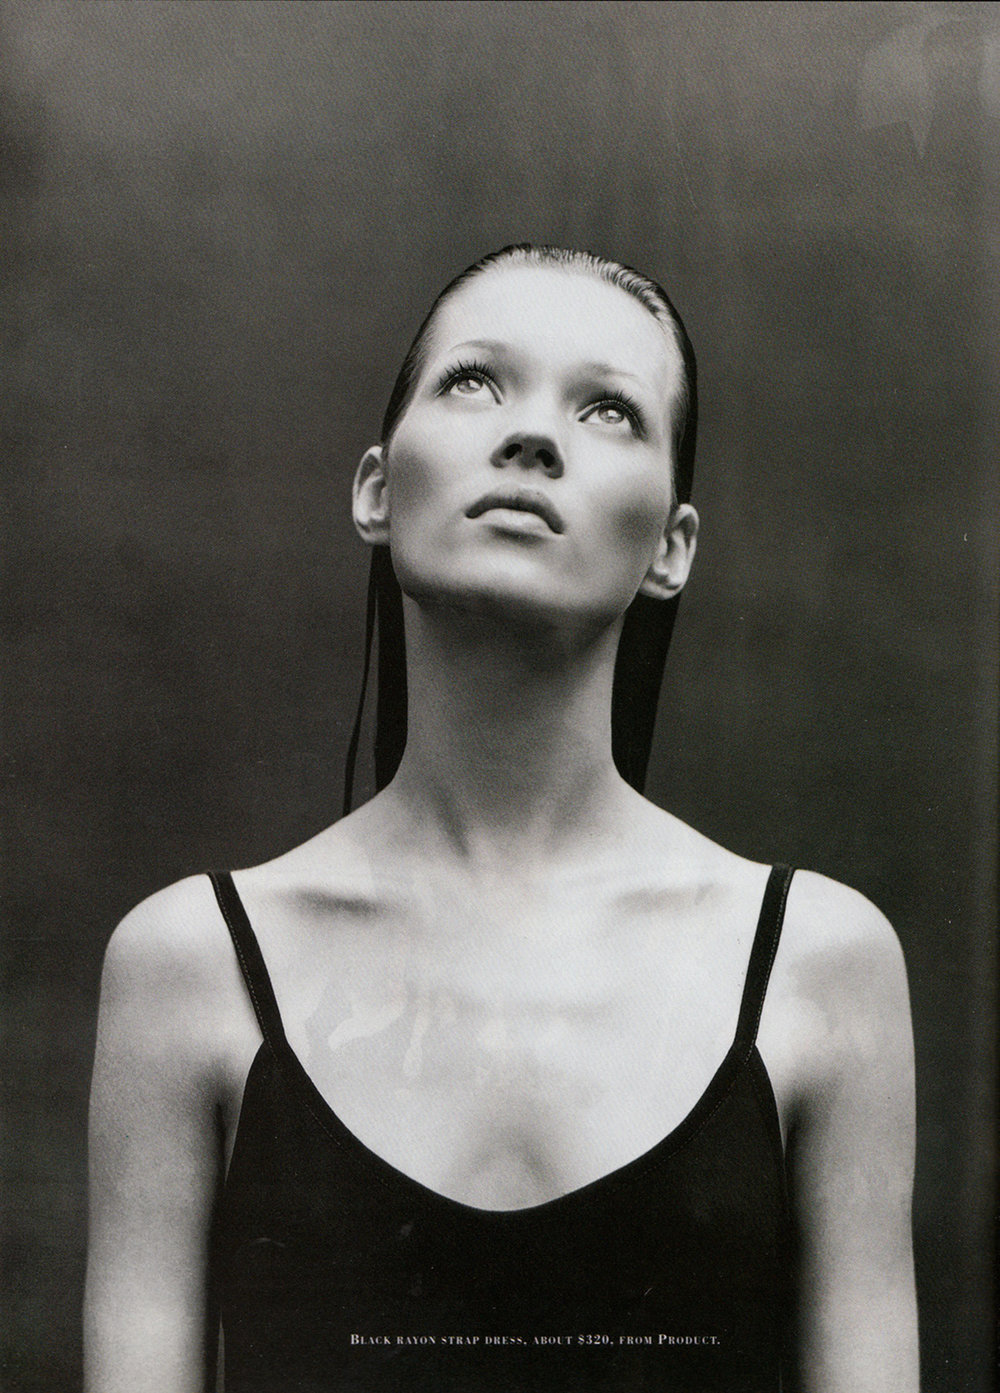 THE ORIGINAL – KATE MOSS BY PATRICK DEMARCHELIER